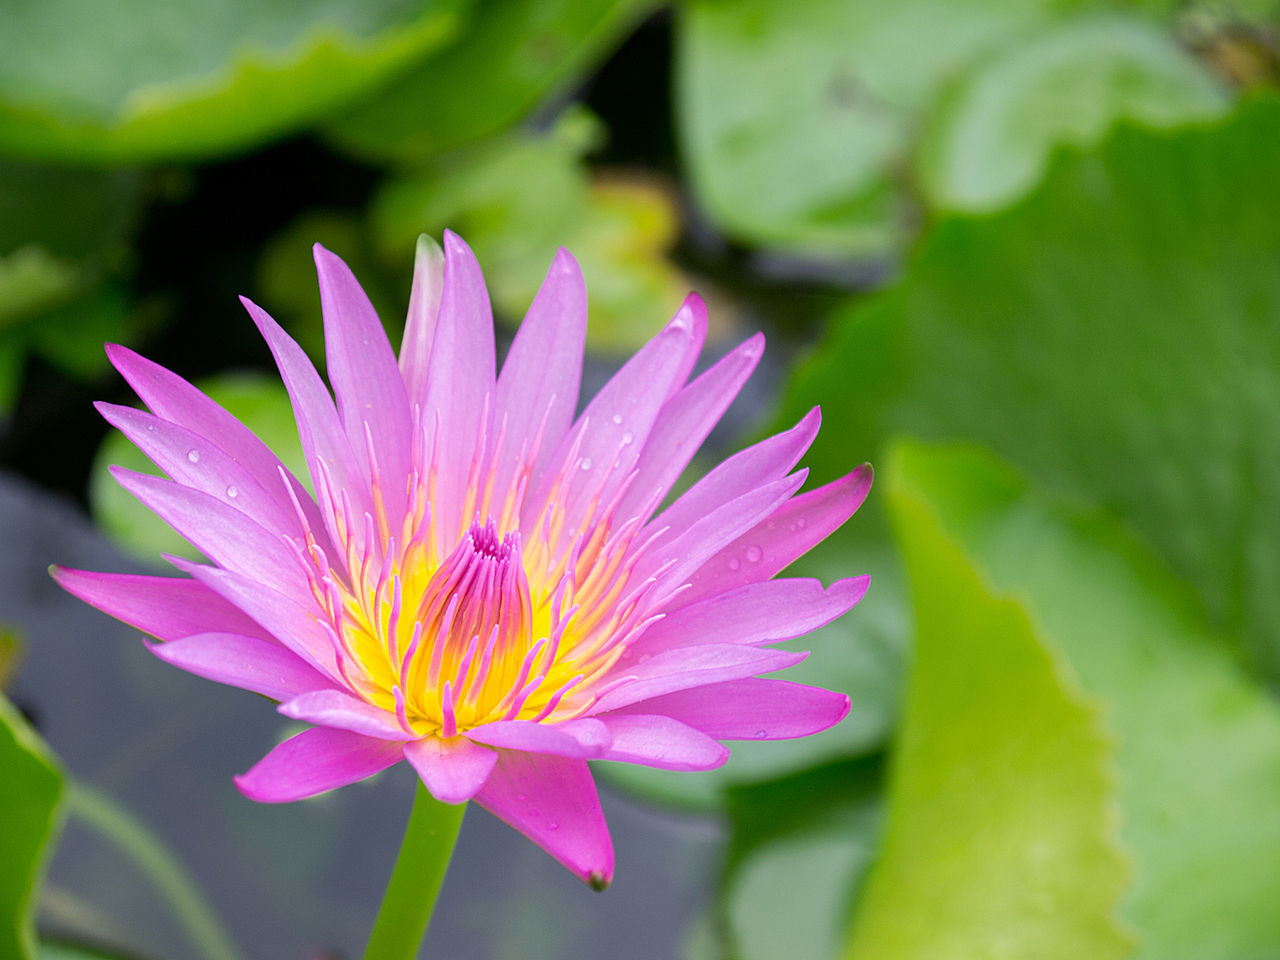 Close-up Blooming Purple Lotus in Pond Beauty In Nature Blooming Close-up Day Flower Flower Head Fragility Freshness Growth Leaf Lotus Lotus Water Lily Love Nature No People Outdoors Petal Pink Color Plant